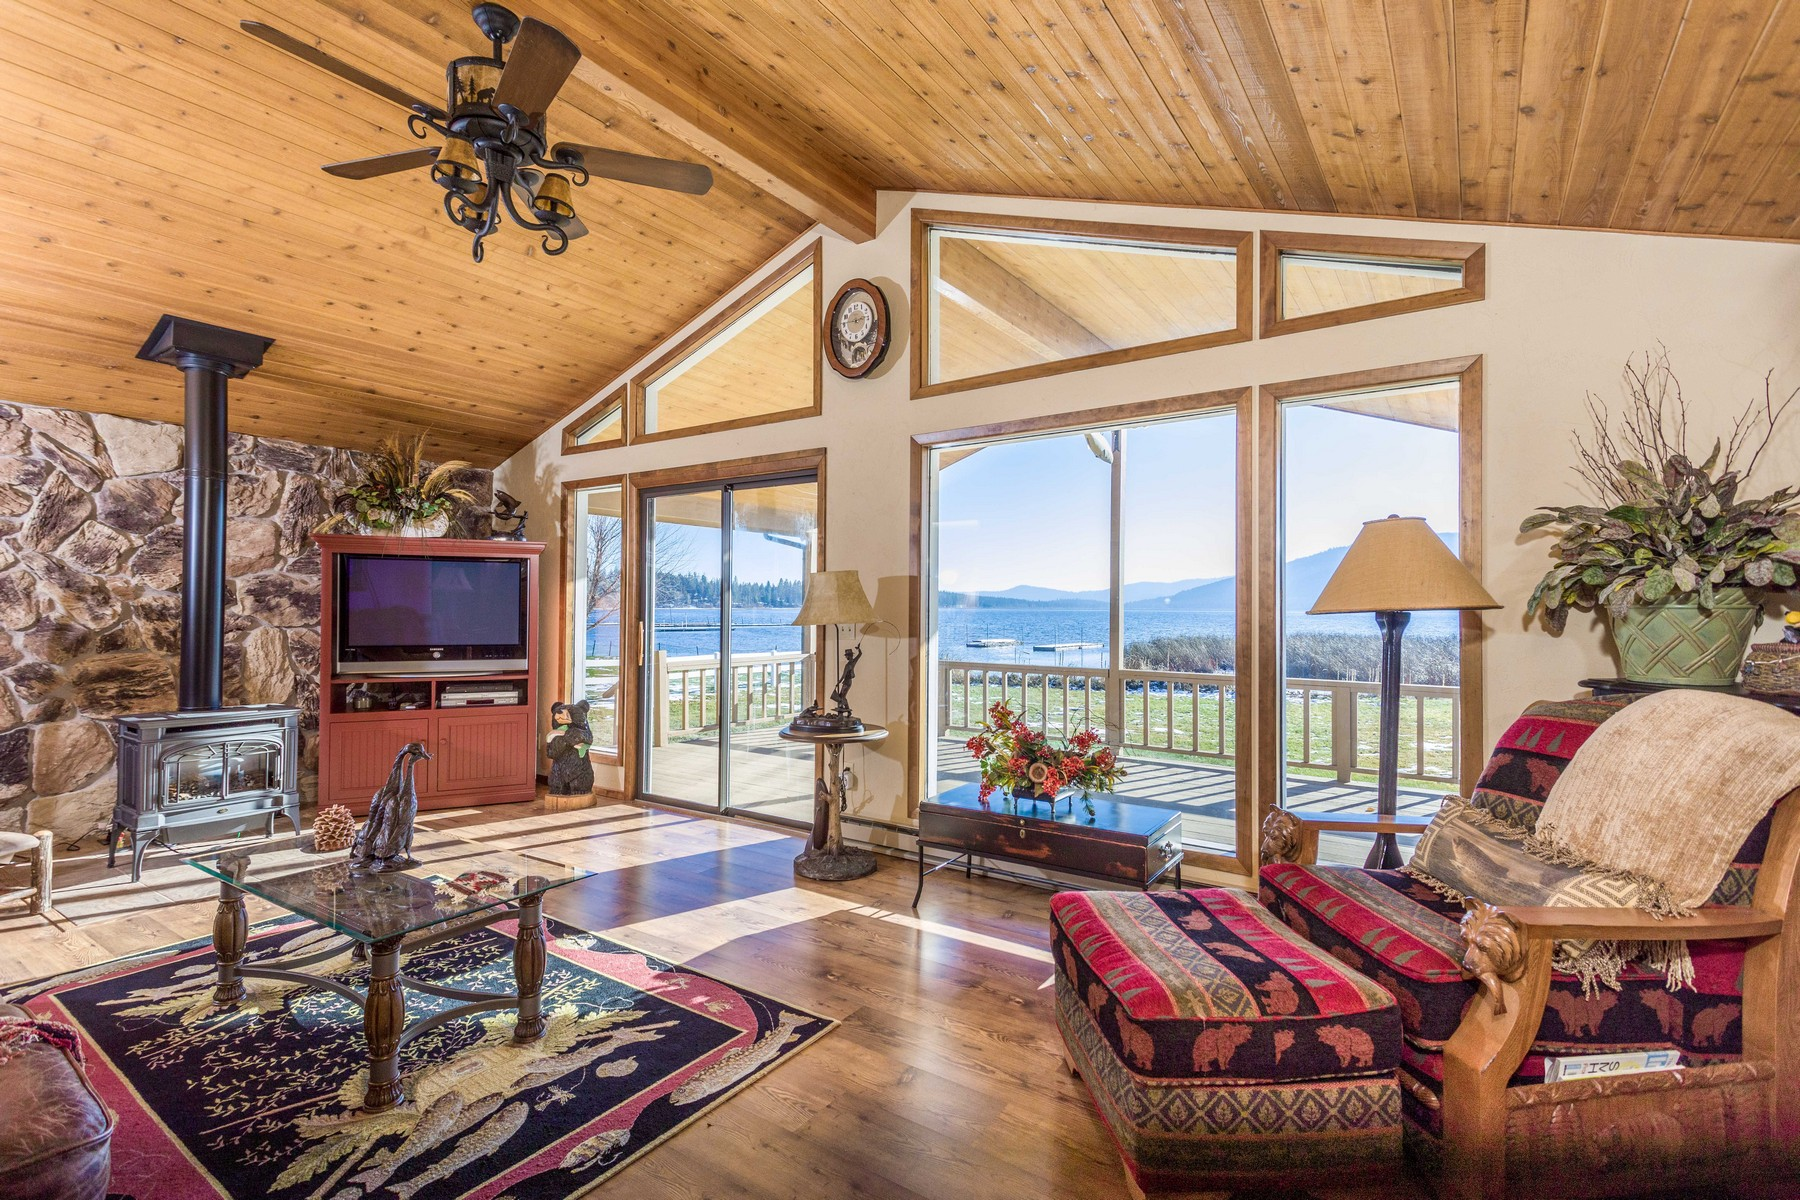 Single Family Homes for Sale at 52231 Lake Mary Ronan Road Proctor, Montana 59929 United States